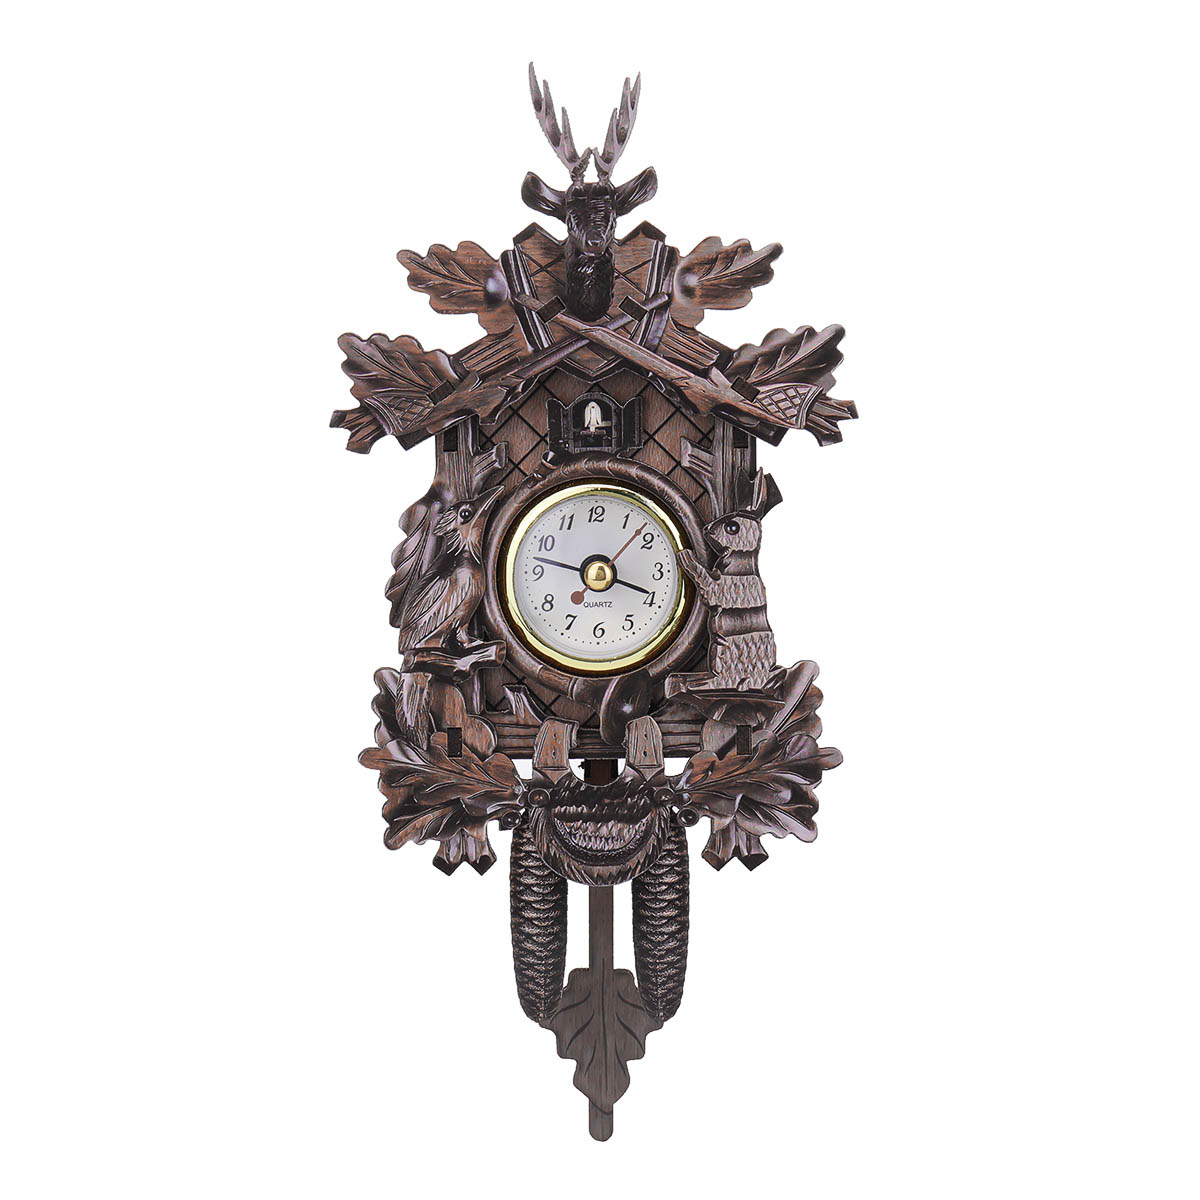 Deer Black Forest Decoration Home Cafe Art Chic Swing Vintage Cuckoo Wall Clock